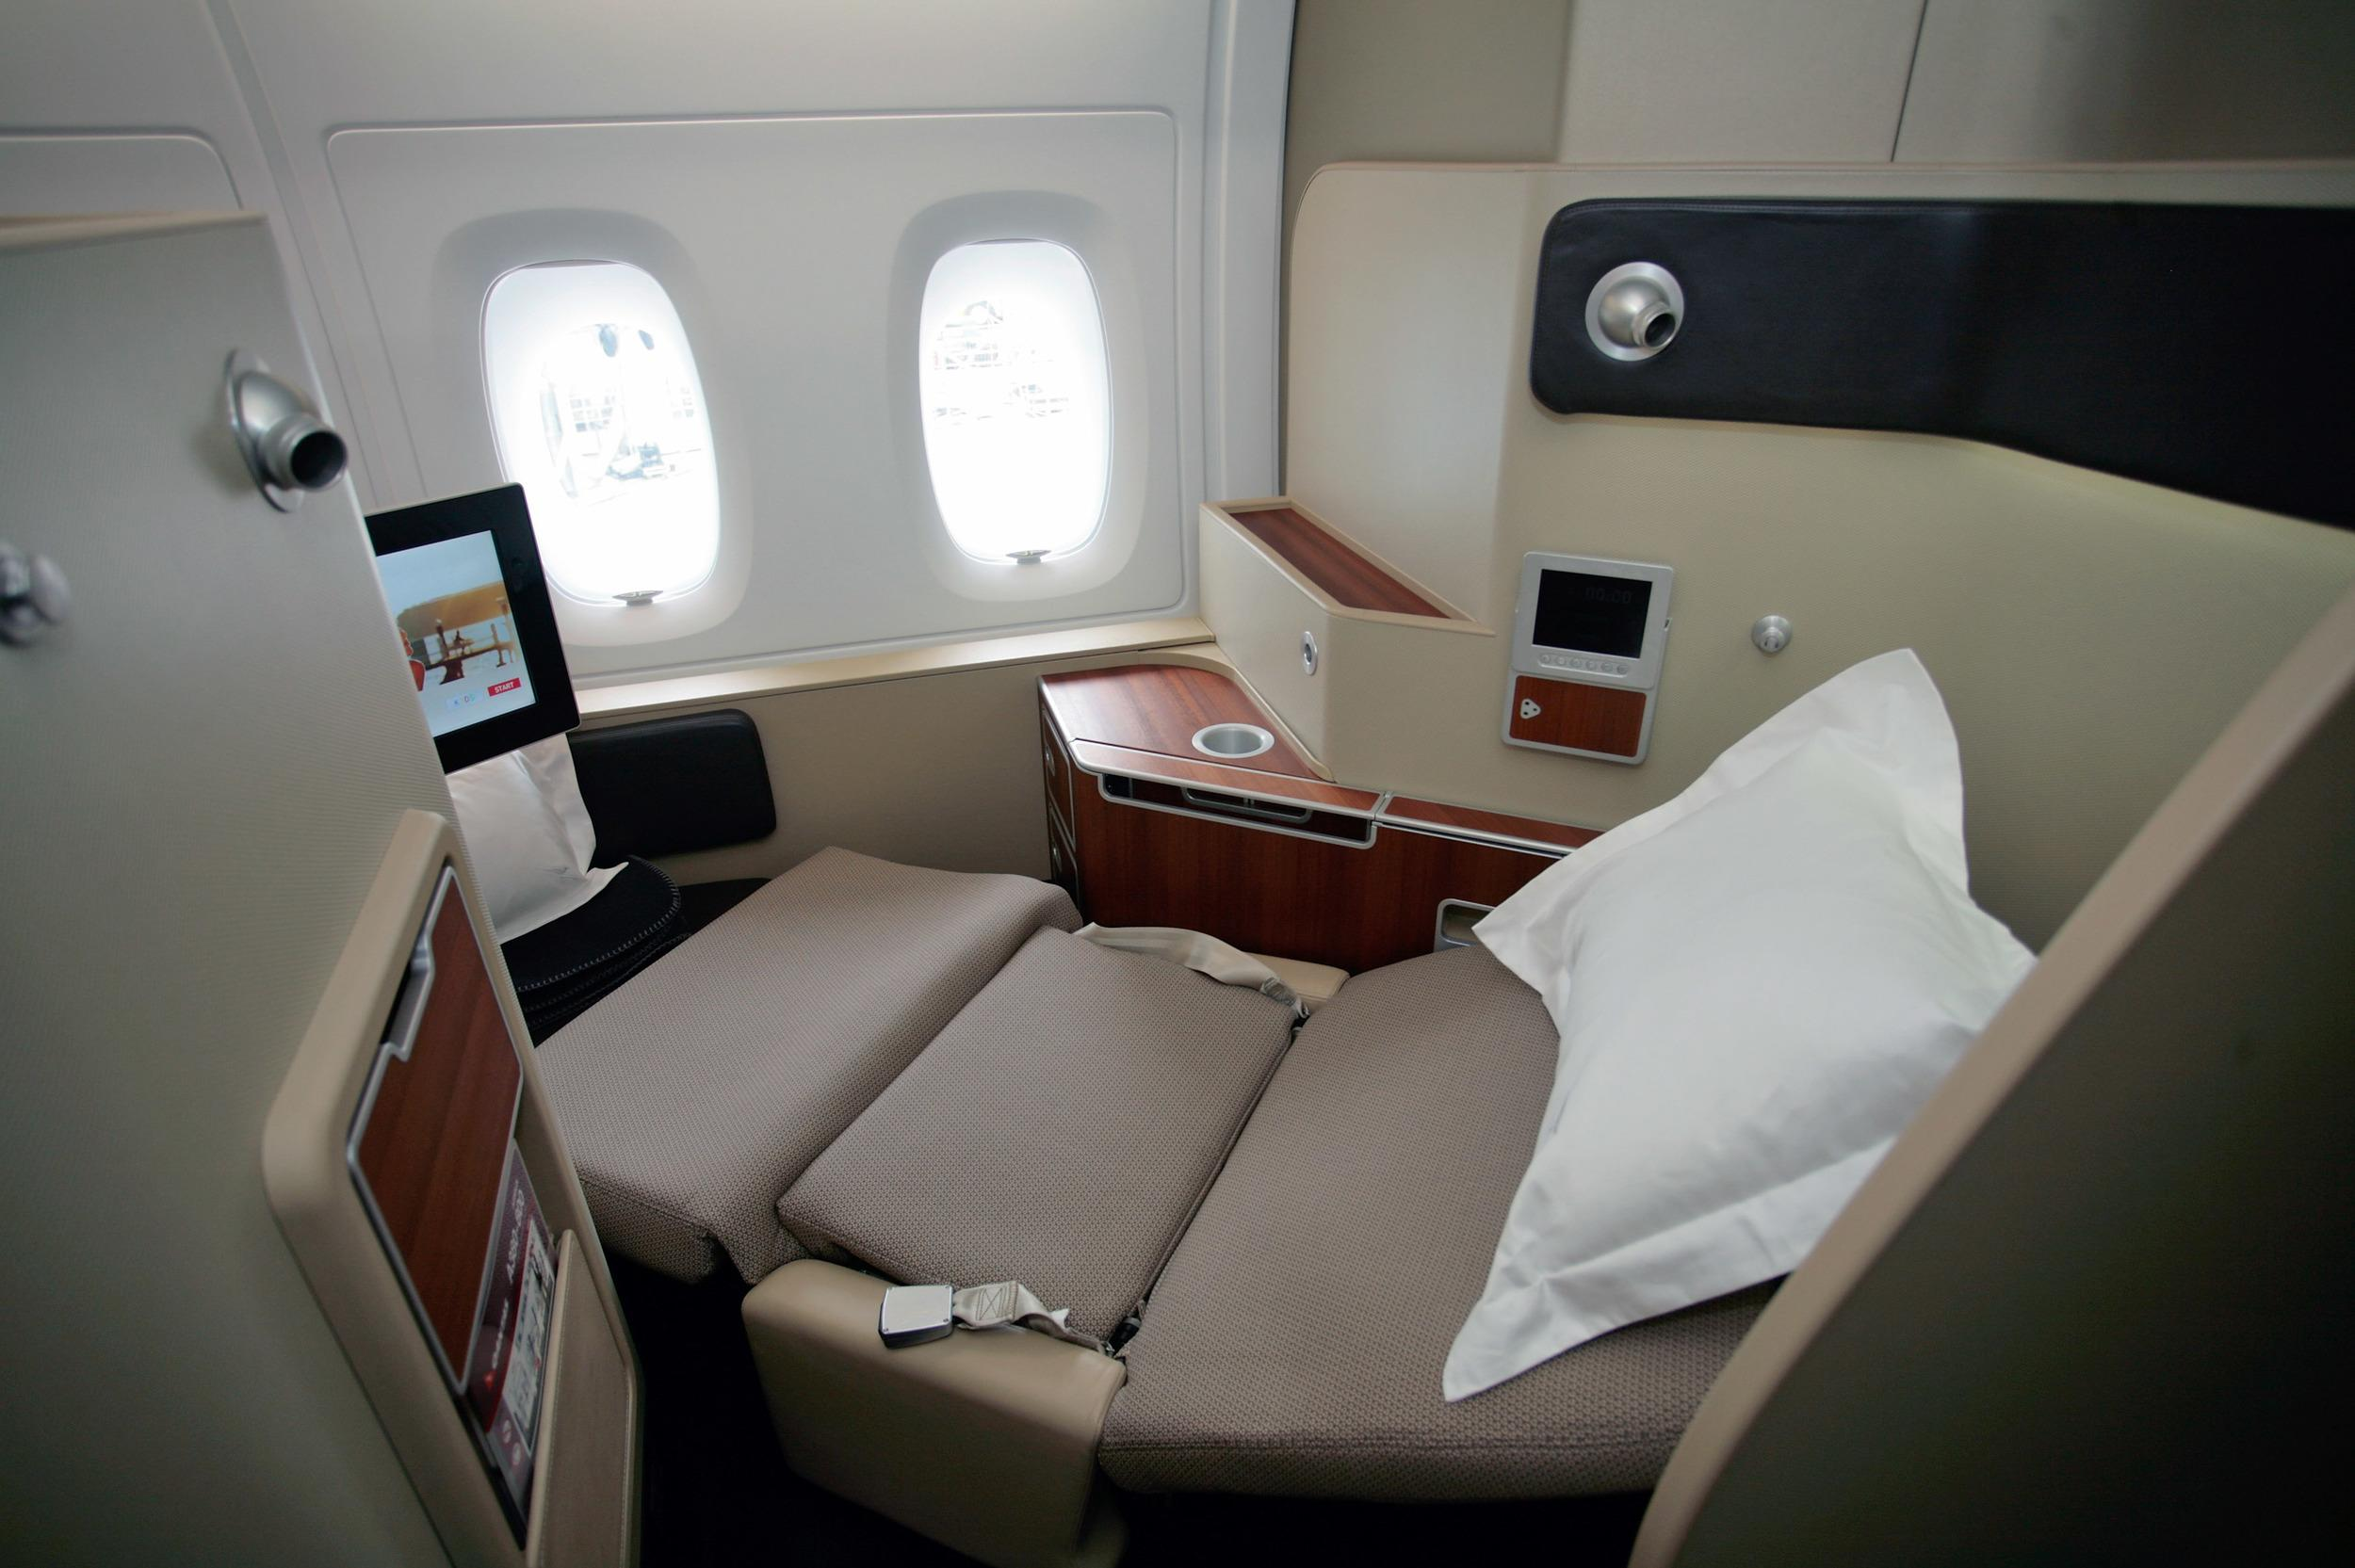 """A 15-hour Qantas flight from Los Angeles to Melbourne was held up in 2012 when <a href=""""https://www.aol.co.uk/travel/2012/08/11/qantas-flight-delayed-passengers-refuse-to-fly-without-pyjamas/"""" target=""""_blank"""">two first-class passengers threw a tantrum and refused to fly</a> after they were told there no XL-sized pyjamas. The Australians complained about not receiving the complimentary sleepwear in their size and were offered business class PJs but were still not happy. They decided not to fly and their baggage was offloaded."""